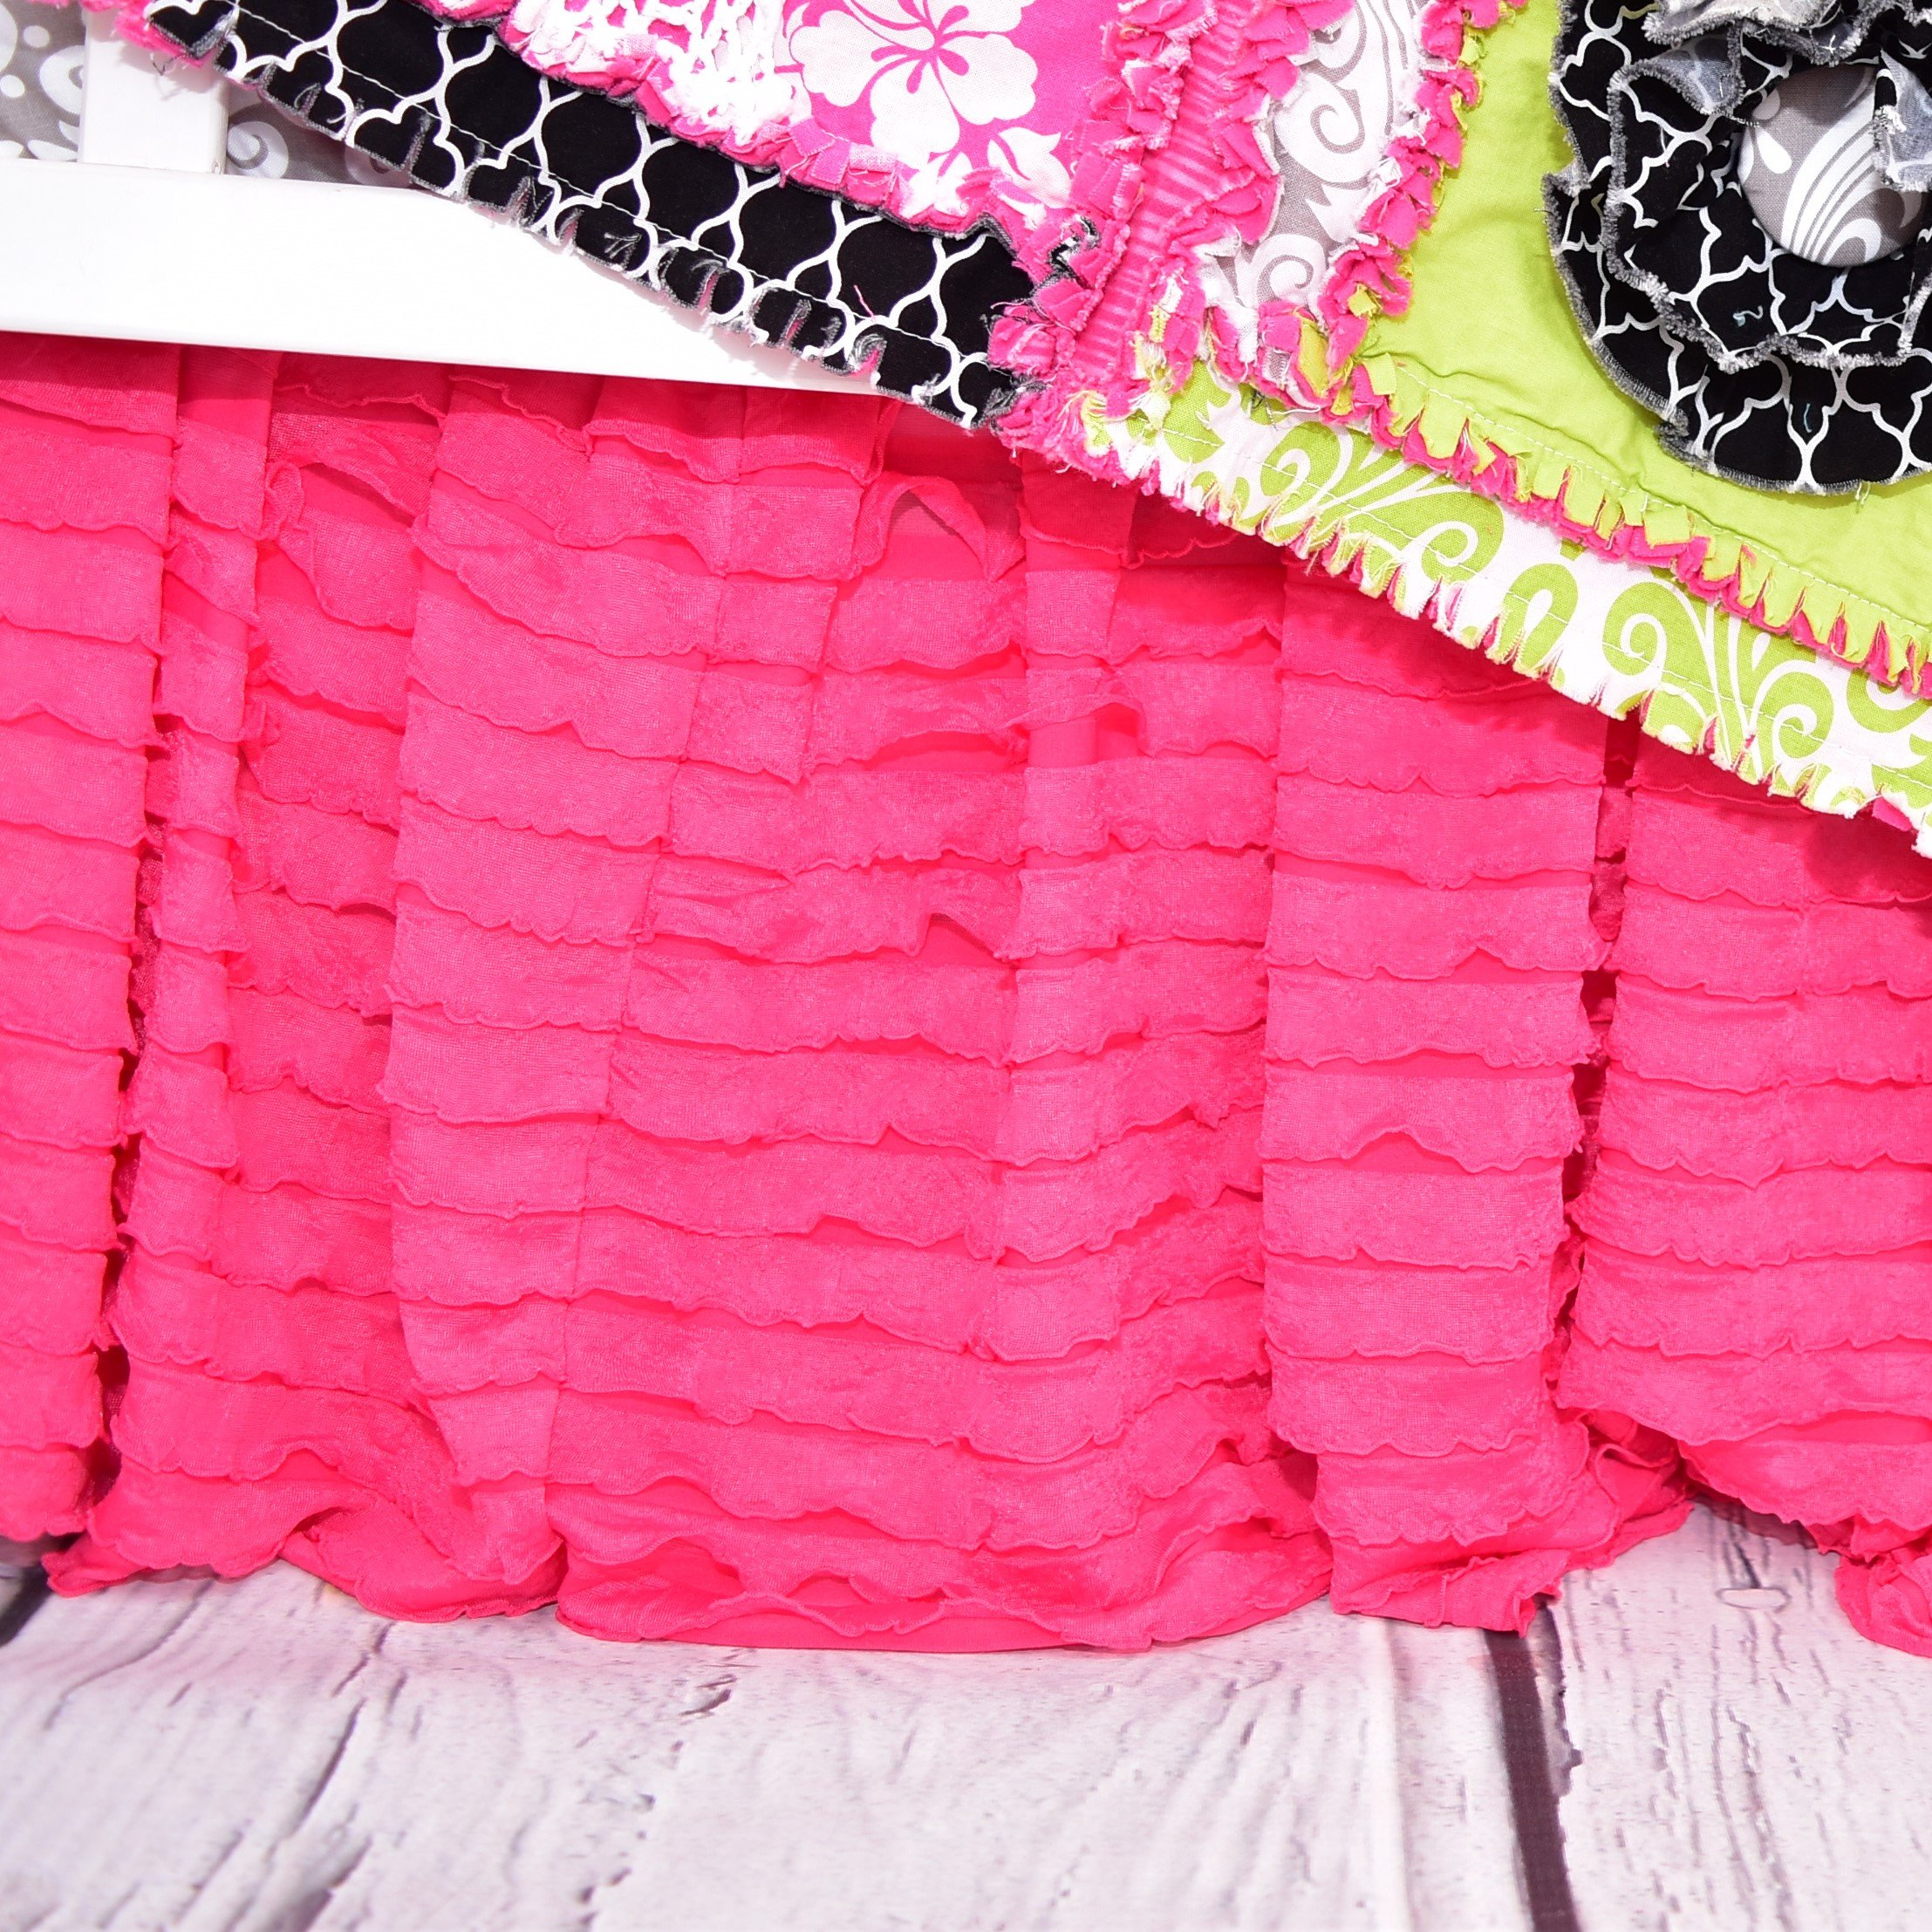 Hot Pink Ruffled Crib Skirts - Extra Long Dust Ruffle 3 Sided Baby Bedskirt for Girl Nursery Bedding